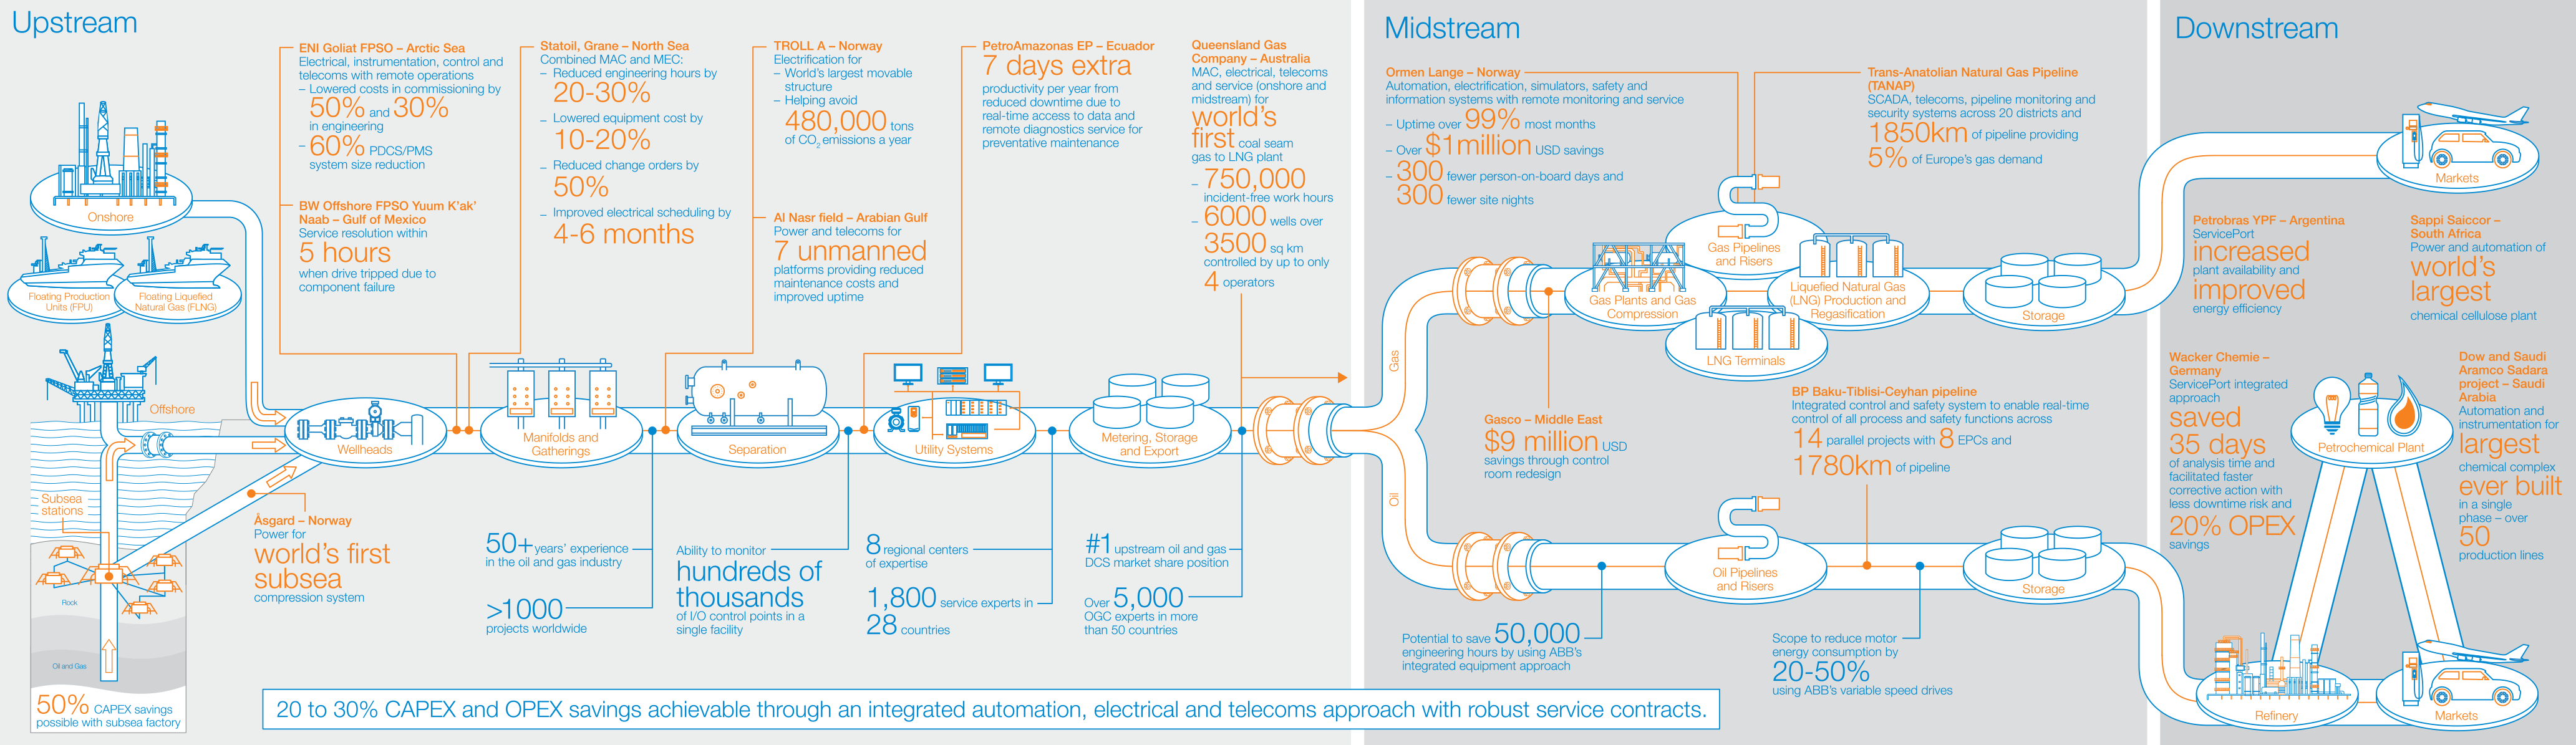 Downloads Abb Wiring Diagrams Provides A Proven Track Record Of Reducing Cost Minimizing Risk And Keeping Customers On Schedule Across The Entire Hydrocarbon Value Chain